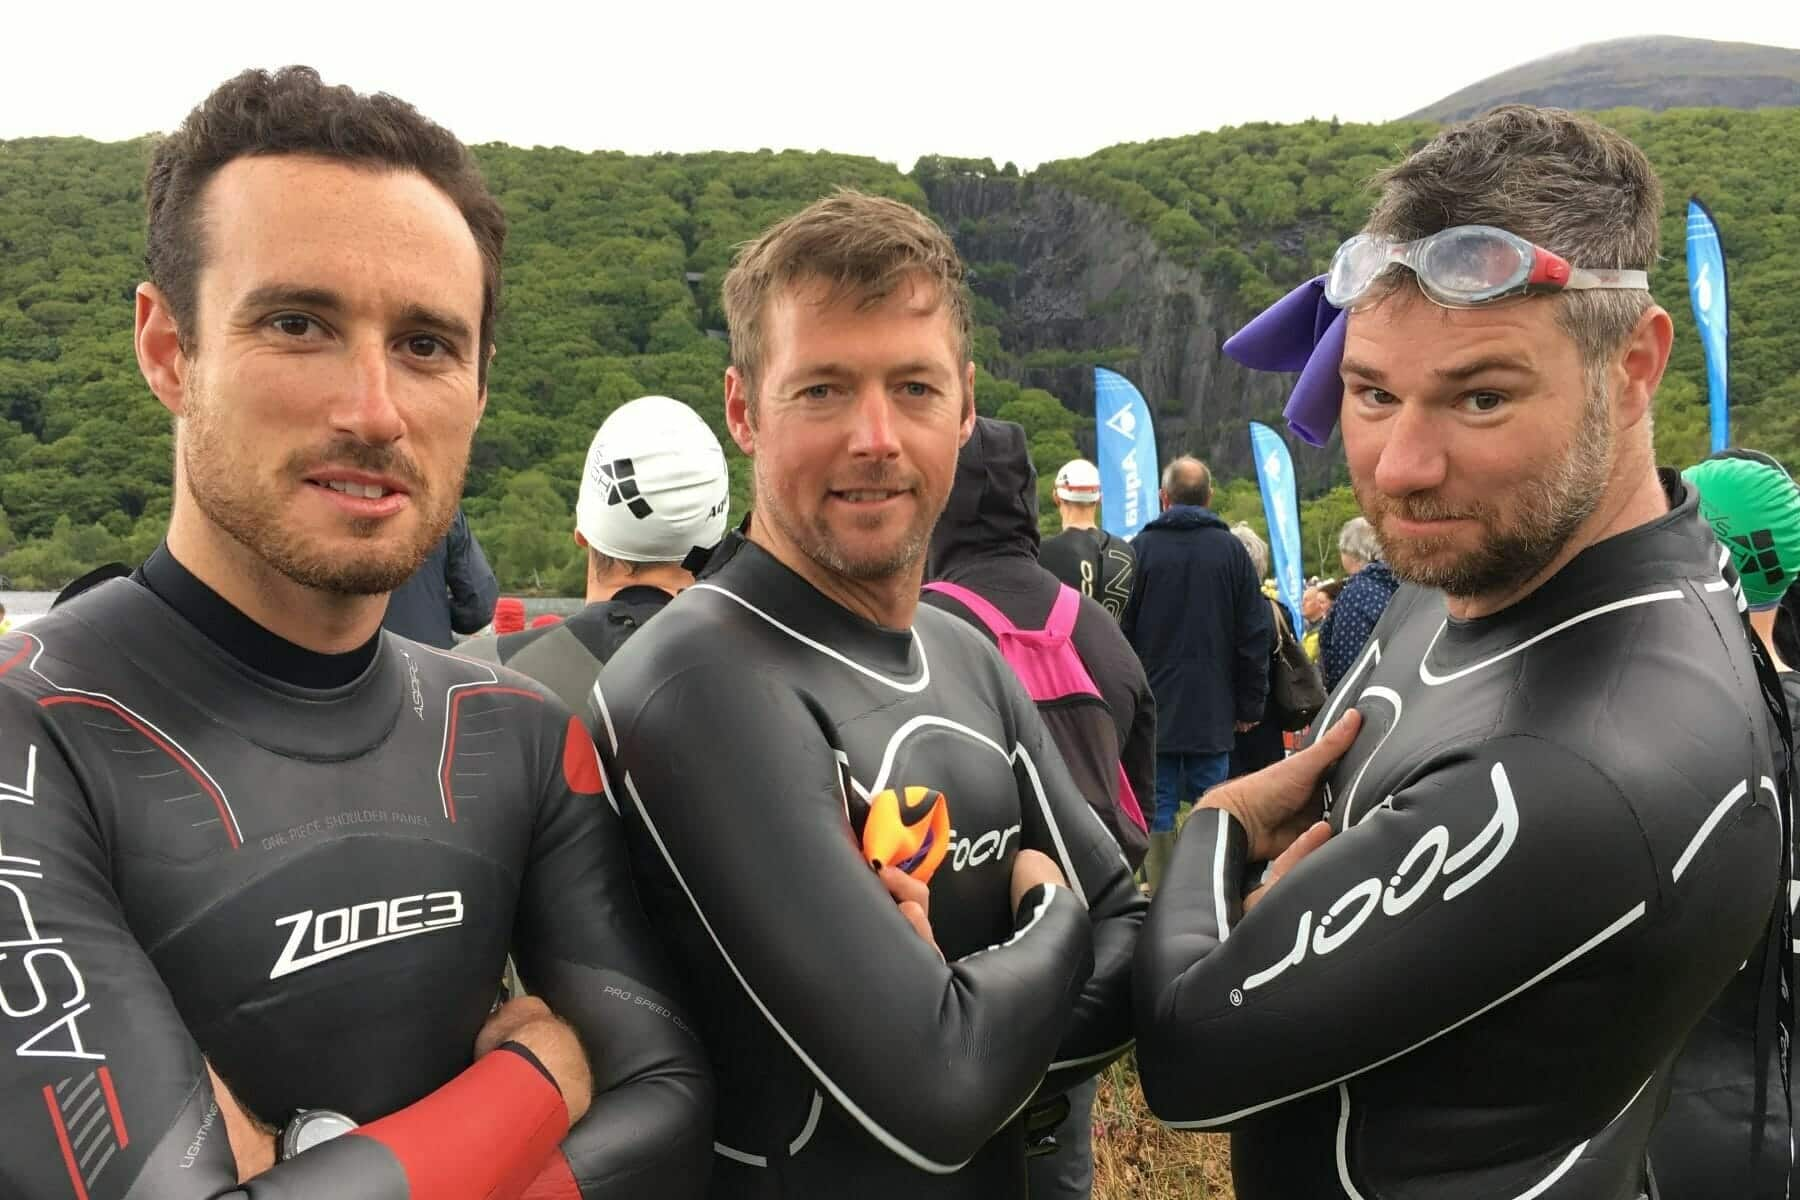 <p>In May 2017, <strong>Grant, Greg</strong> and <strong>Dickie</strong> took on the Slateman Triathlon in Snowdonia National Park. This gruelling half iron distance was a first for them all, consisting of a 1km open water swim, 51km road cycle and 11km trial run, certainly not a challenge for the fainthearted!   Hours and hours were dedicated to training, but the guys never gave up.  The event itself was tough, but they did it,  finishing with tired smiles on their faces raising over £2700.</p>